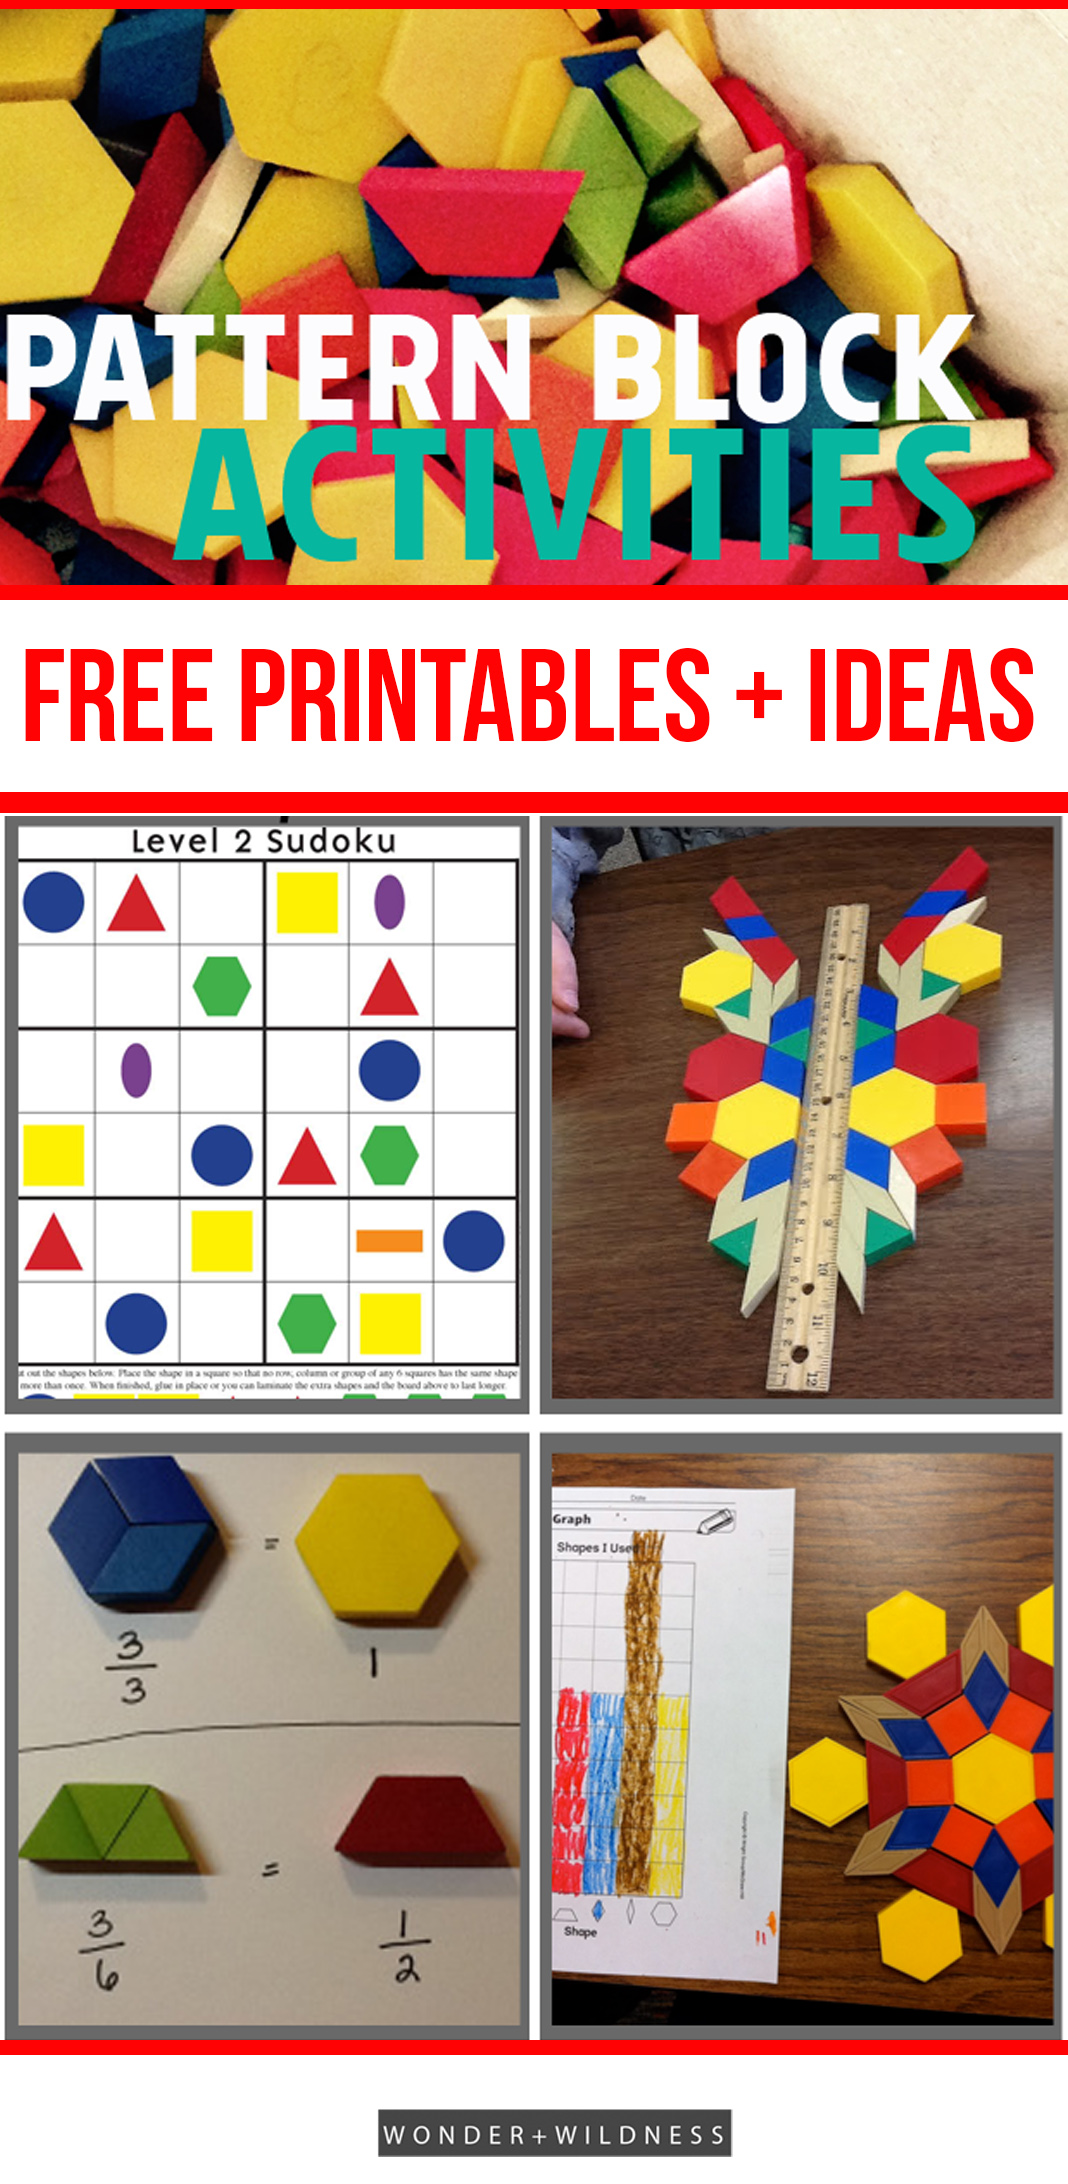 everyday math pattern block template - printable pattern block designs activities wonder